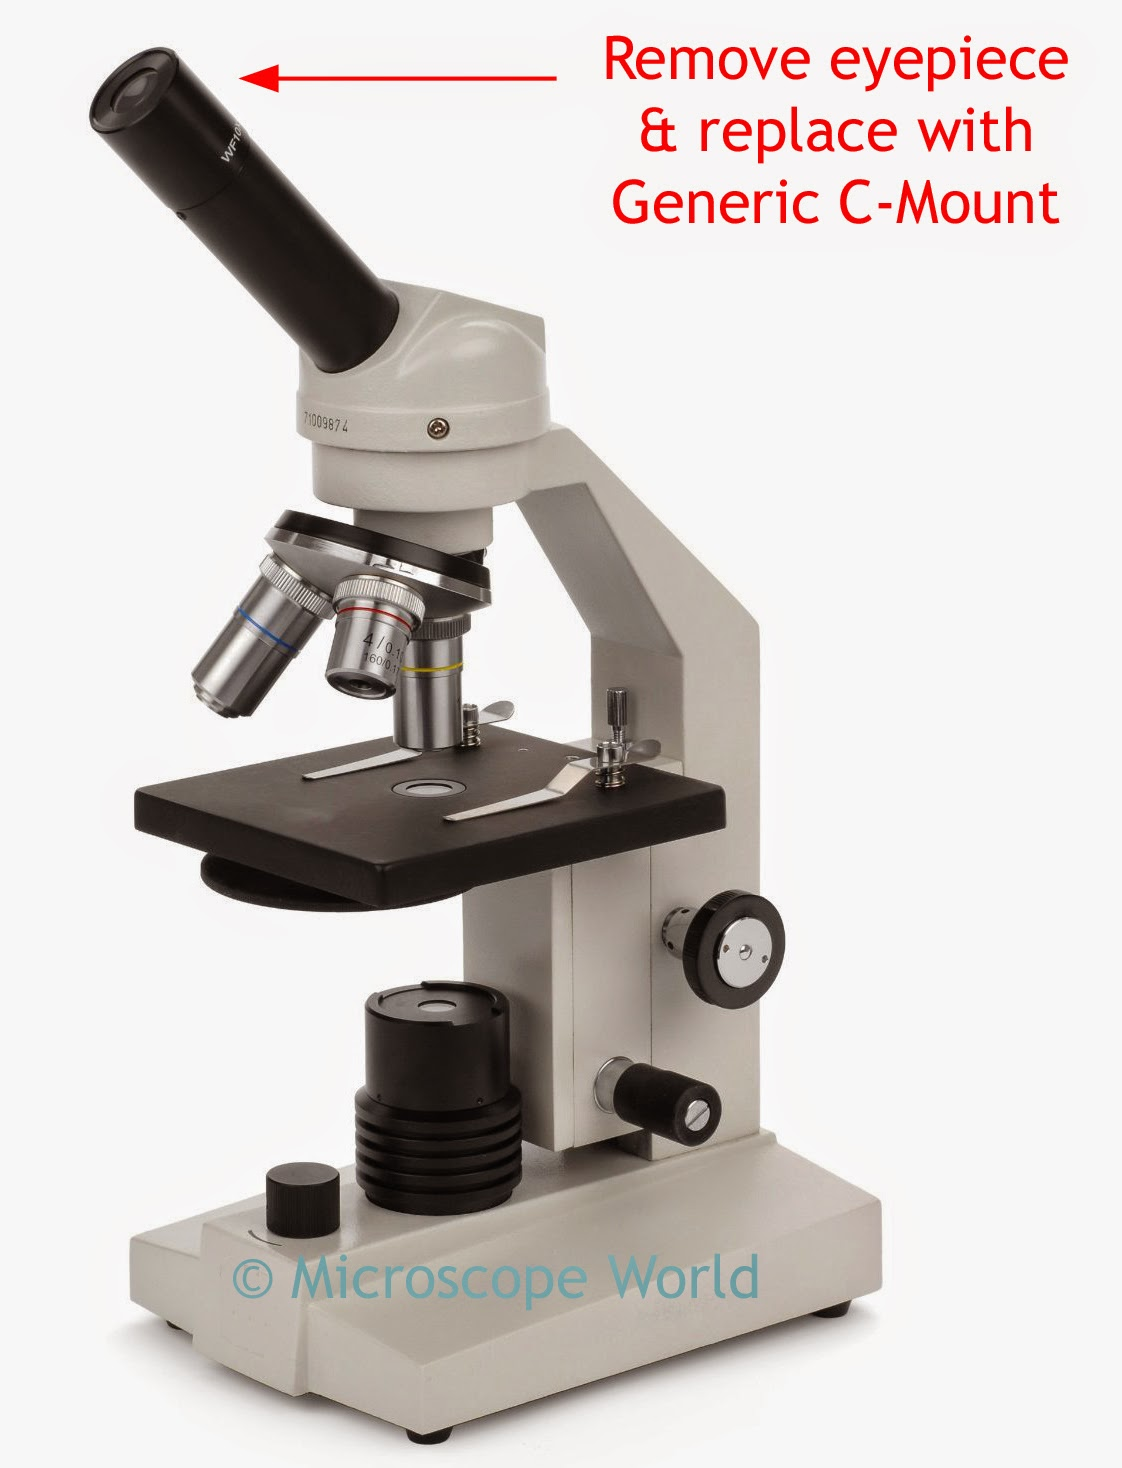 Replacing high school microscope eyepiece with c-mount camera adapter